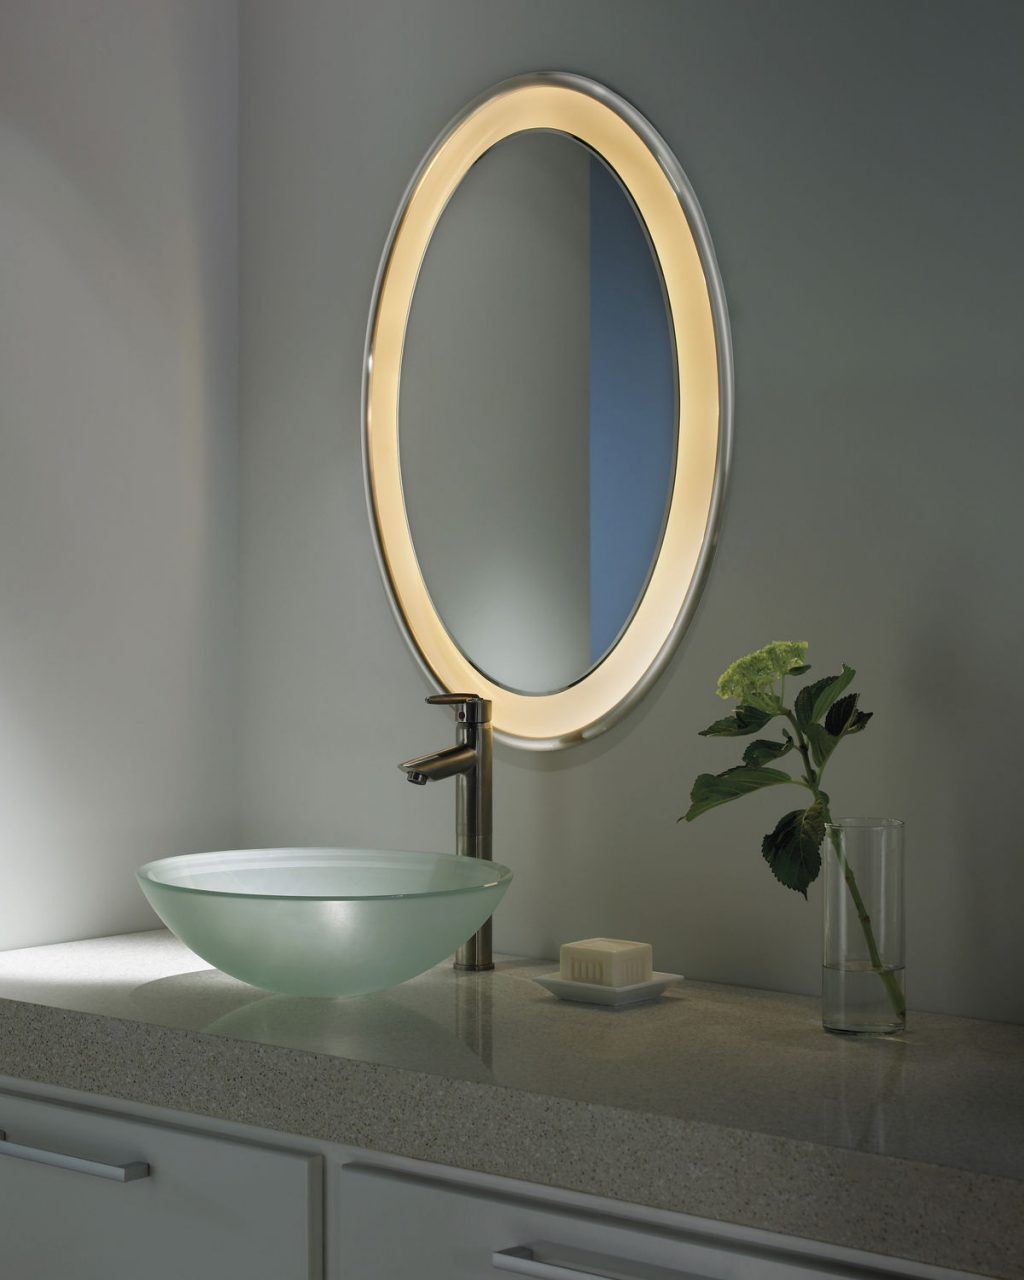 Oval Framed Mirrors Fossil Brewing Design 24 Fabulous Framed